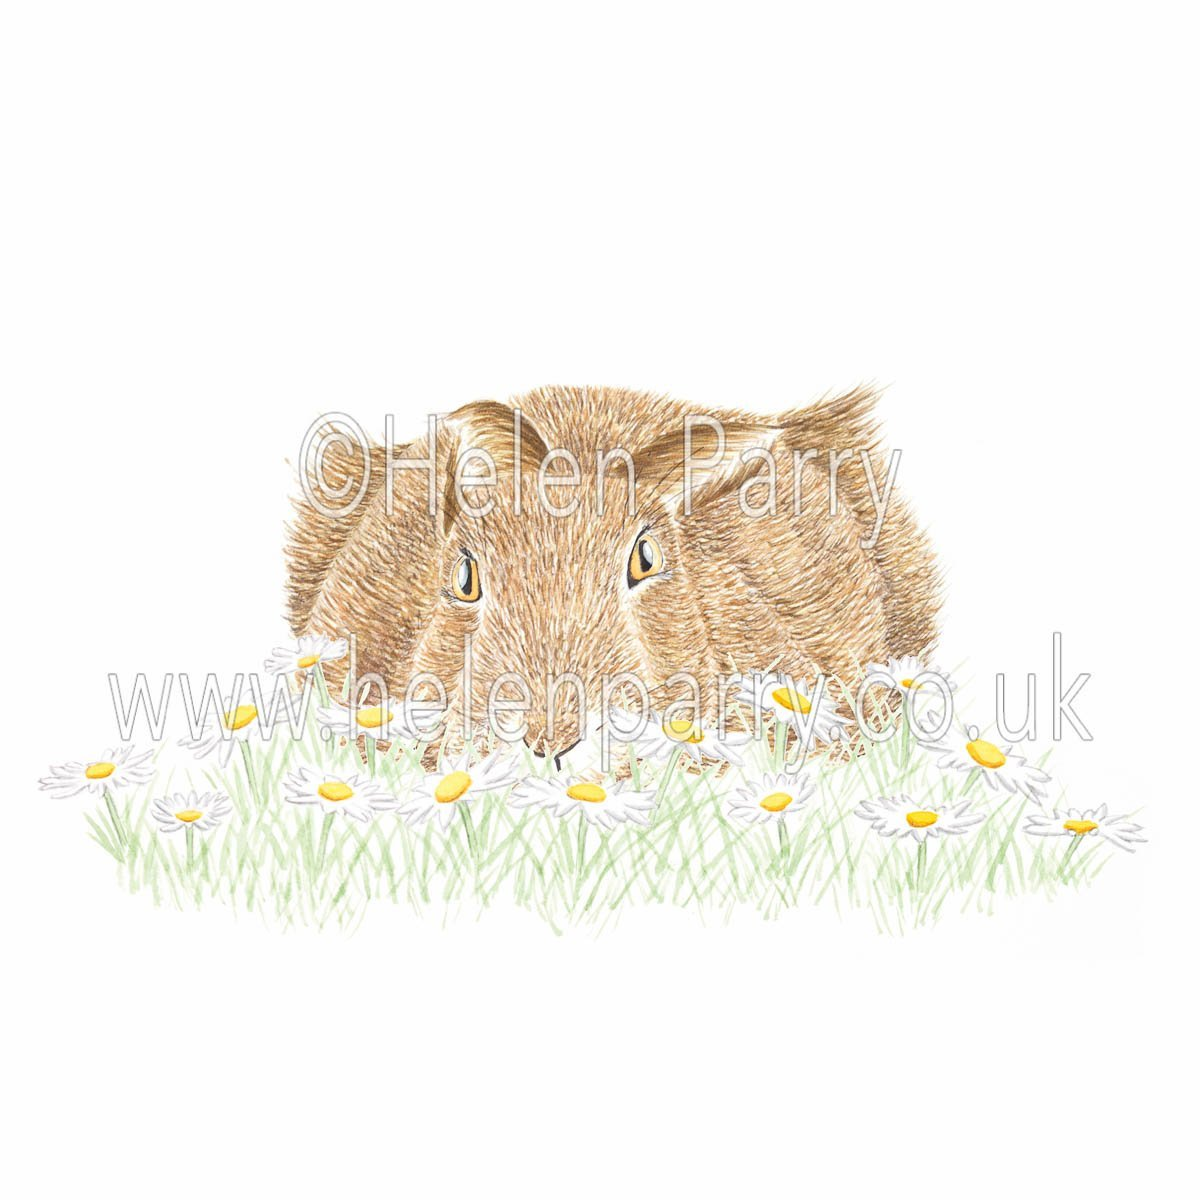 greeting card of hare crouched low hiding in daisies